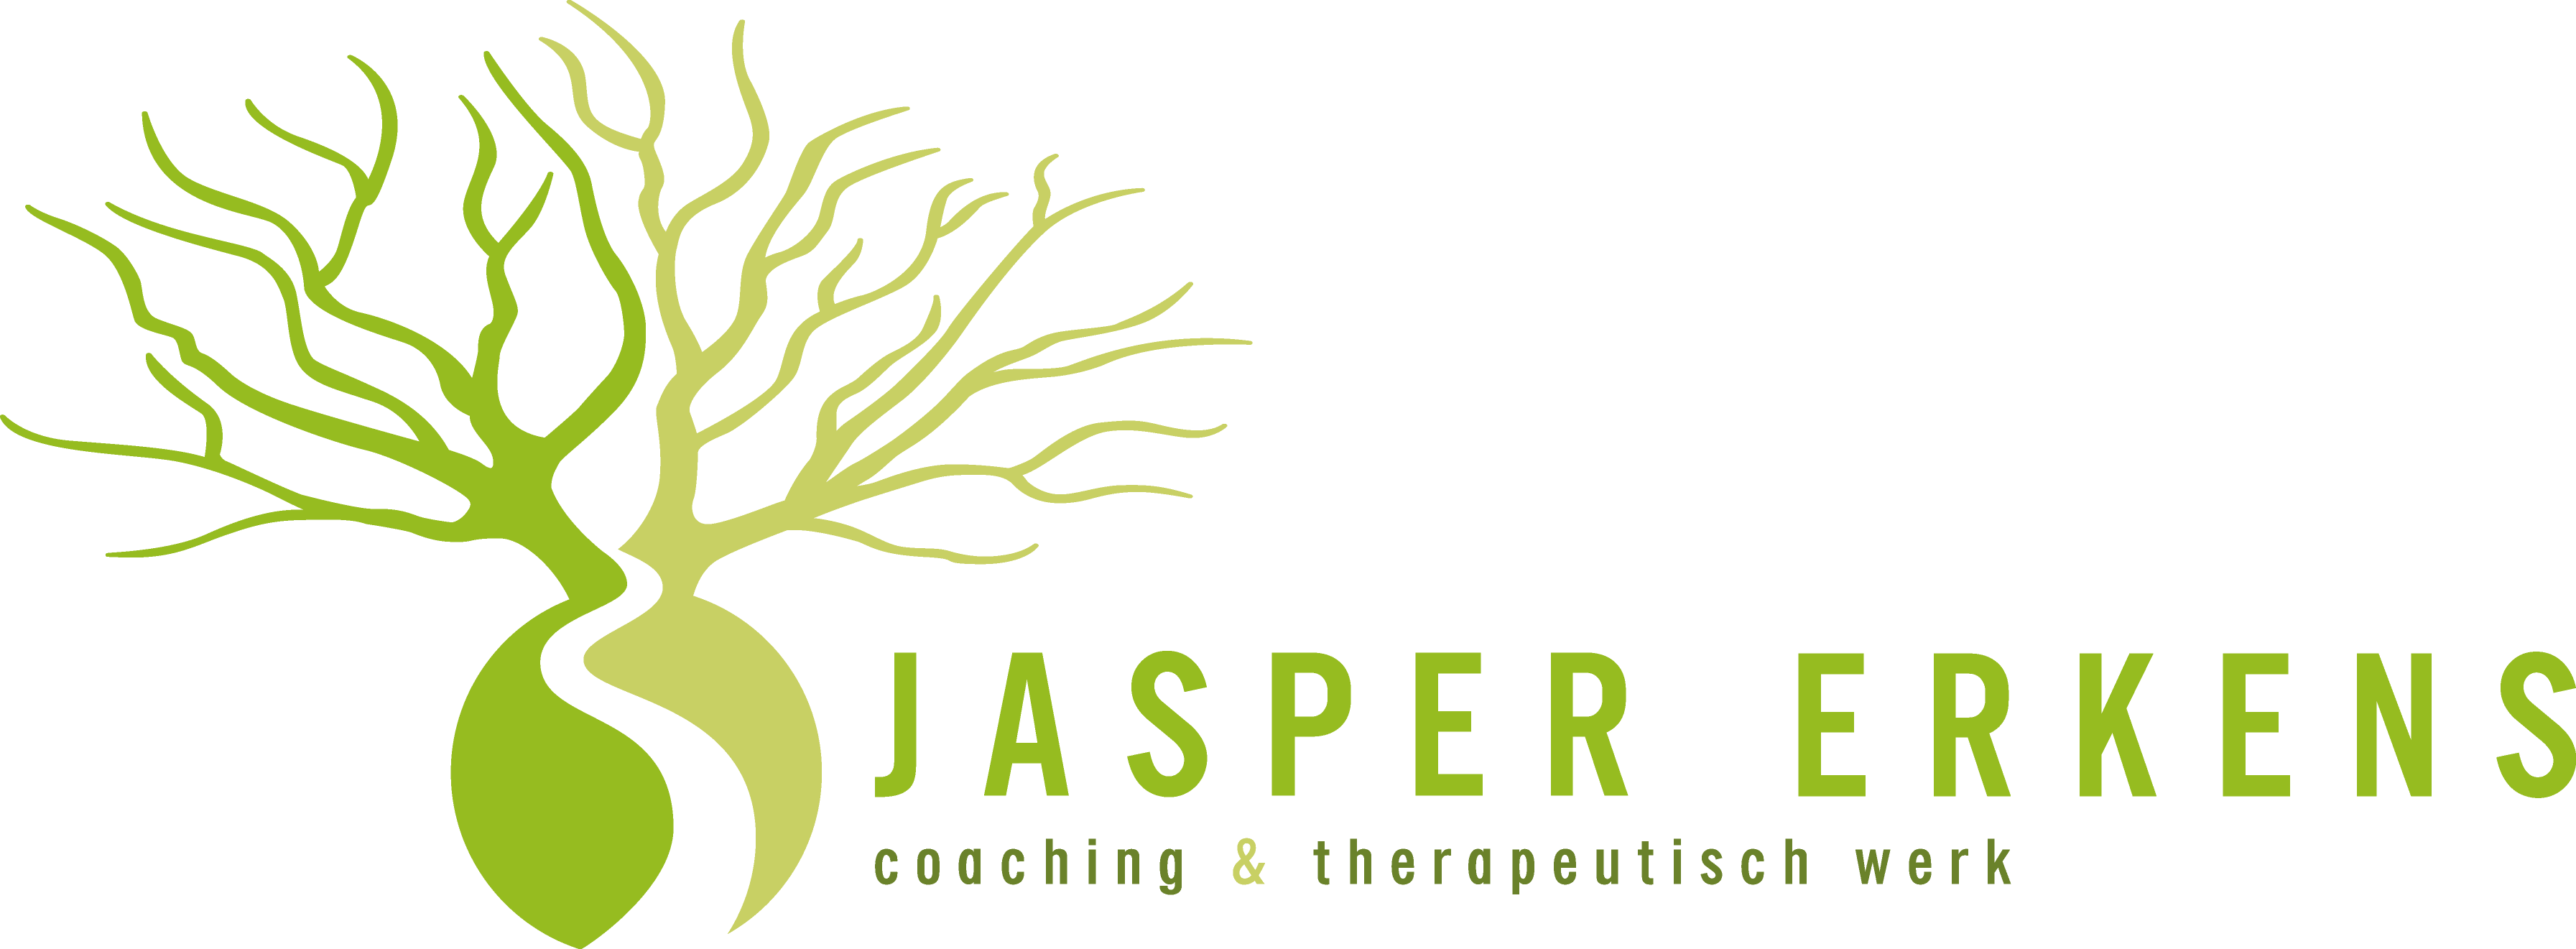 Jasper Erkens - coaching en therapie